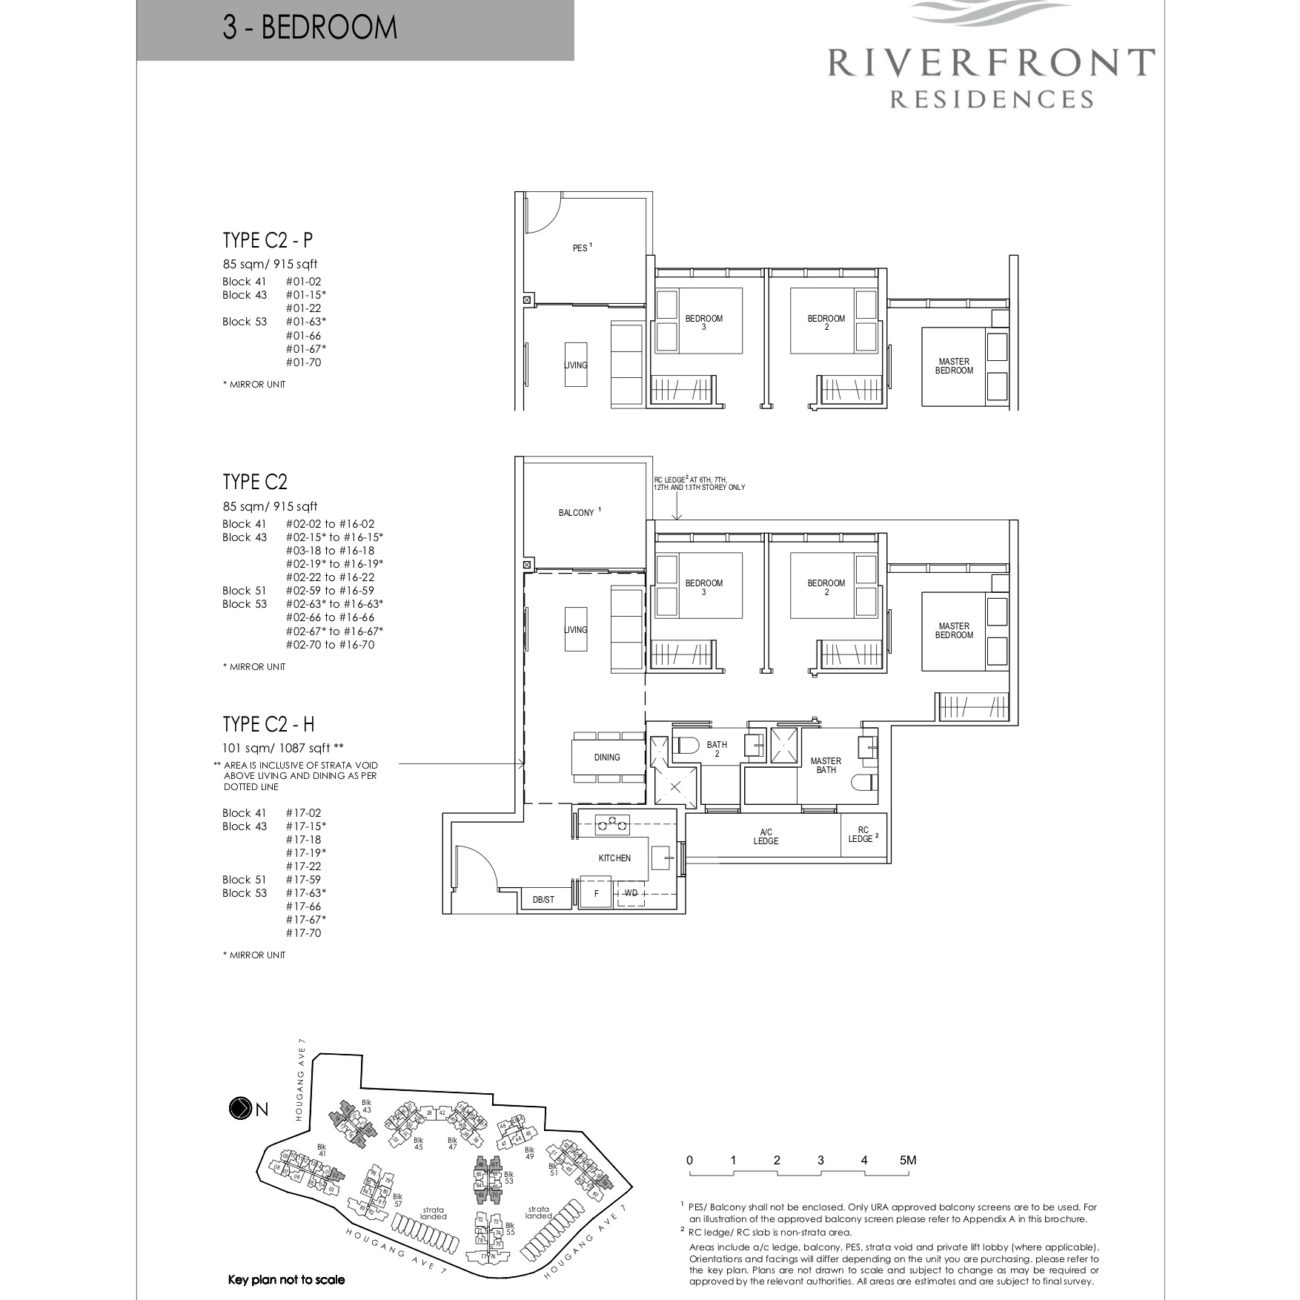 riverfront-residences-floorplan-3bedroom-c2